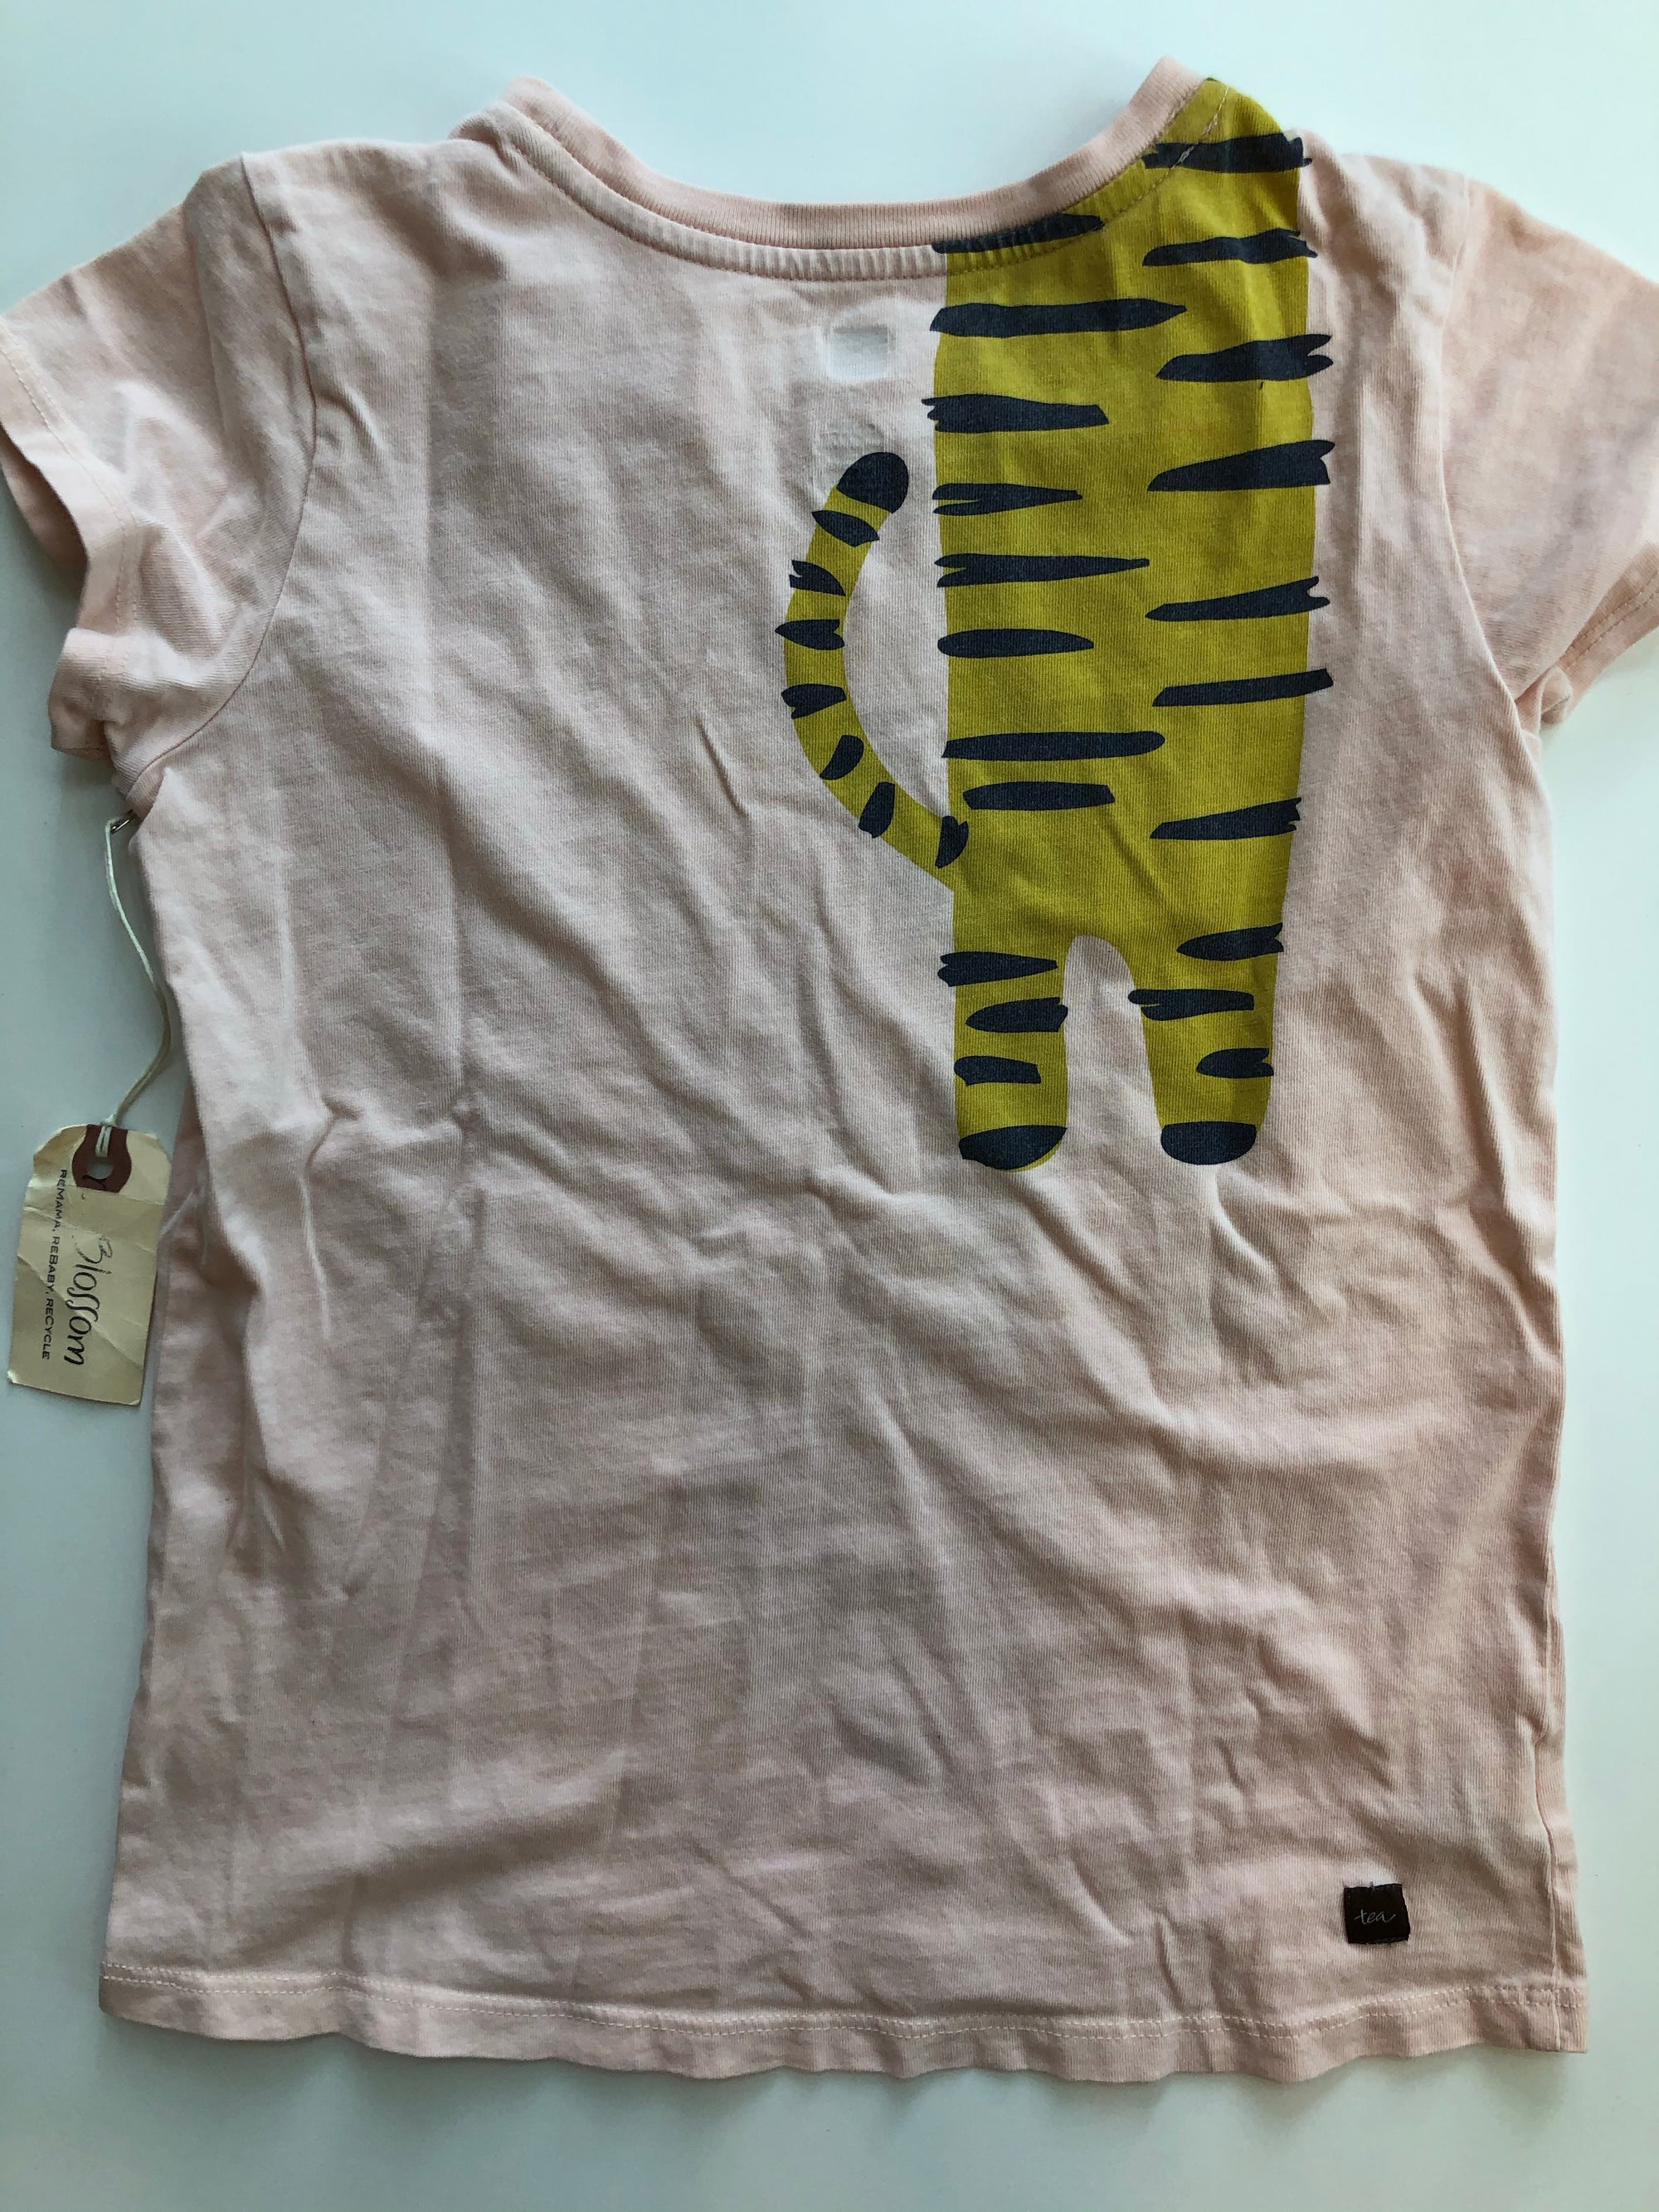 Resale 7y Tea Collection Wrap-Around Tiger T-Shirt